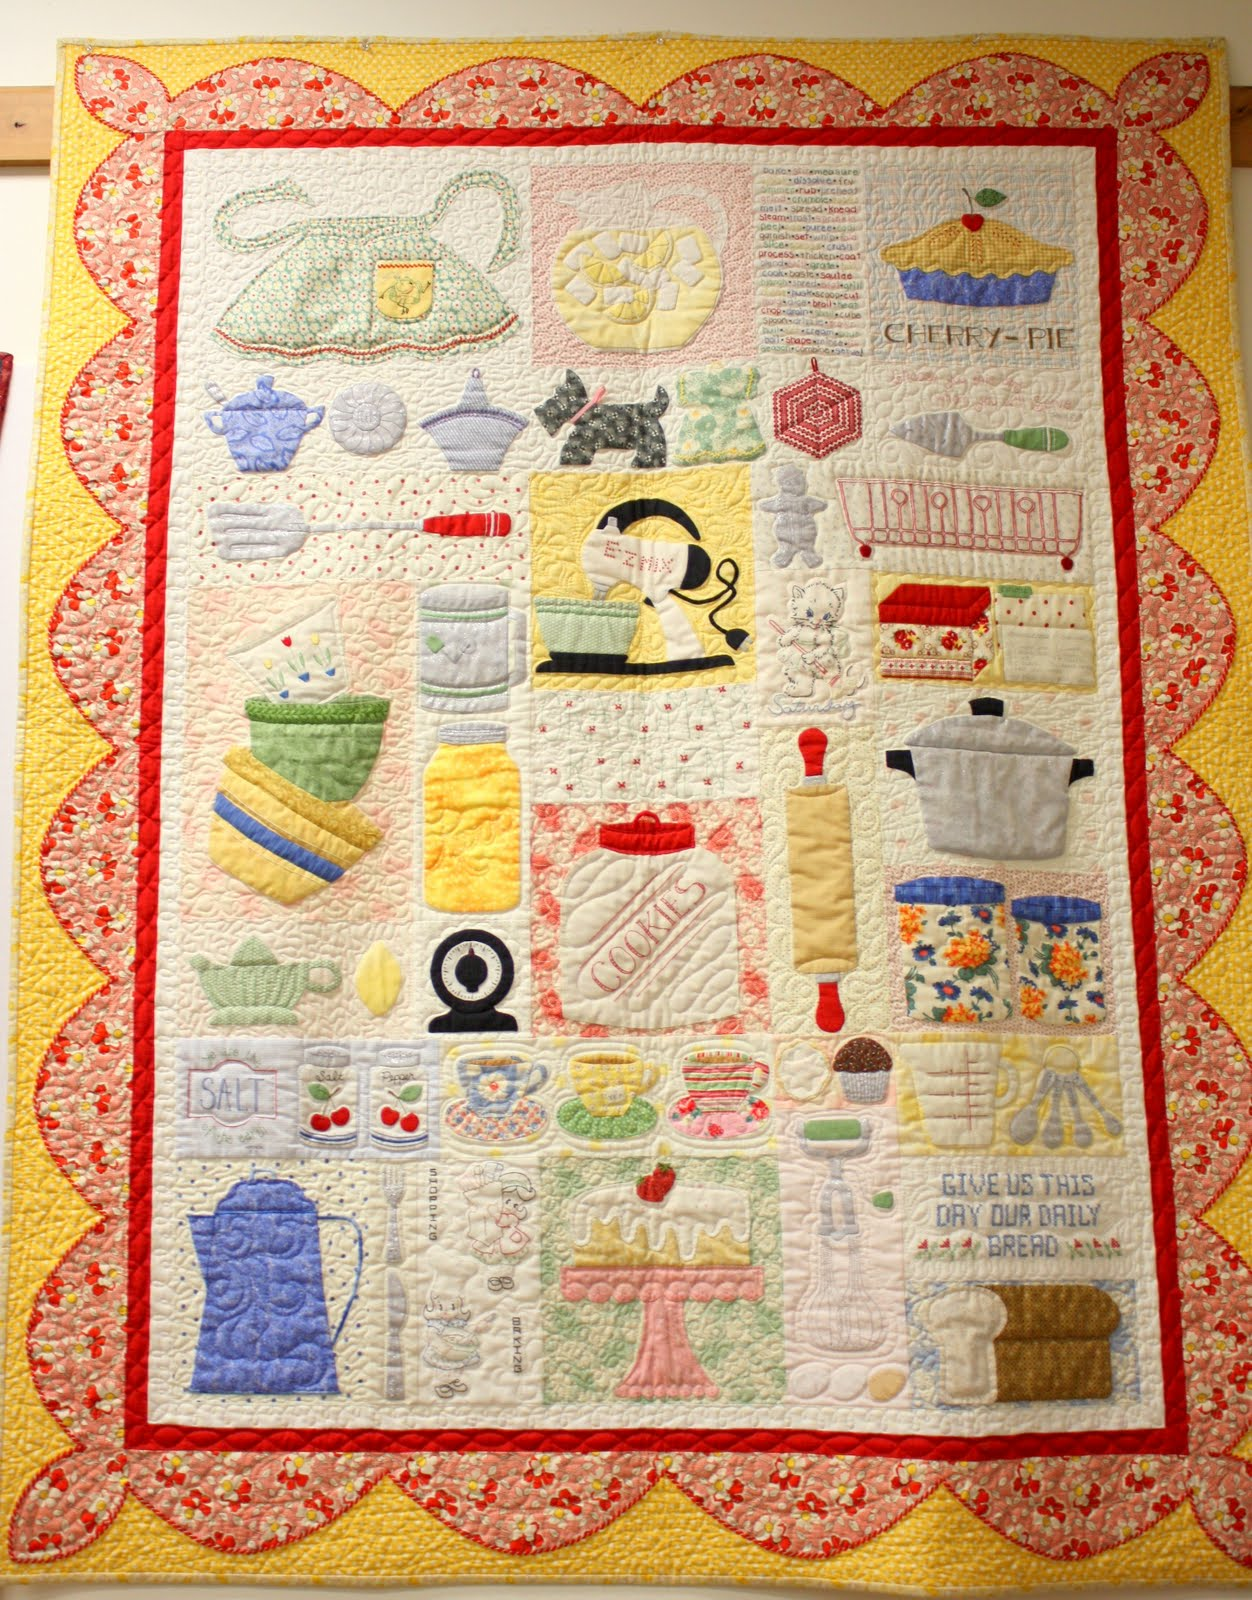 Kitchen Quilting Ideas : Lori Holt - Quilter Extrordinaire - Diary of a Quilter - a quilt blog